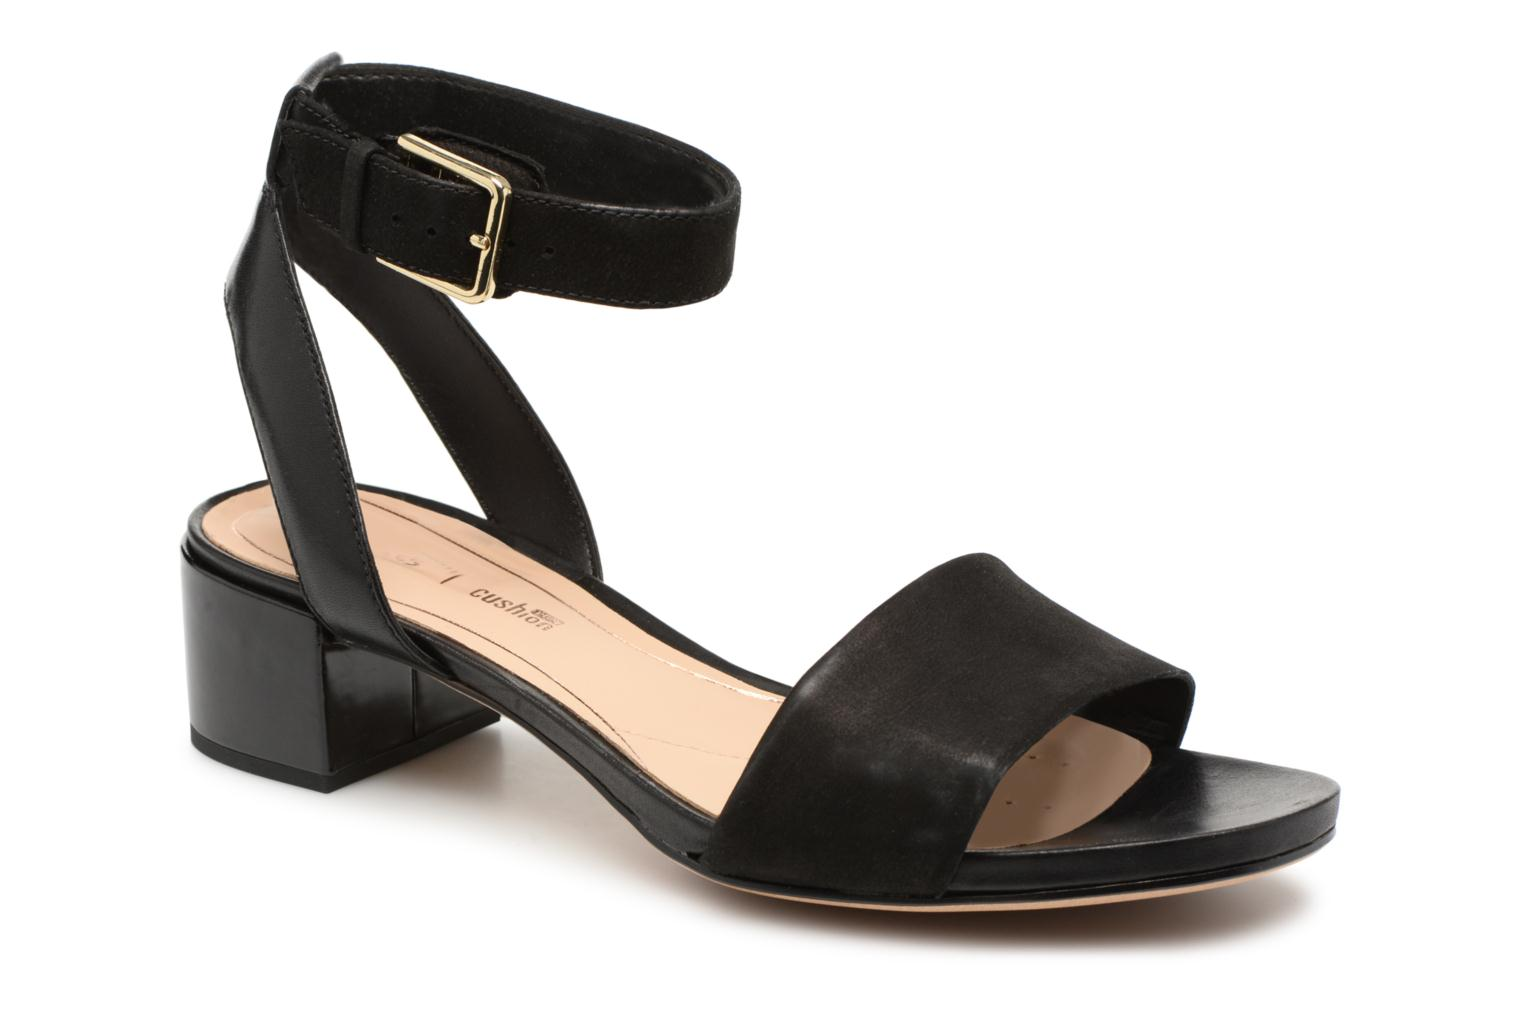 Marques Chaussure femme Clarks femme Orabella Rose Black Combi